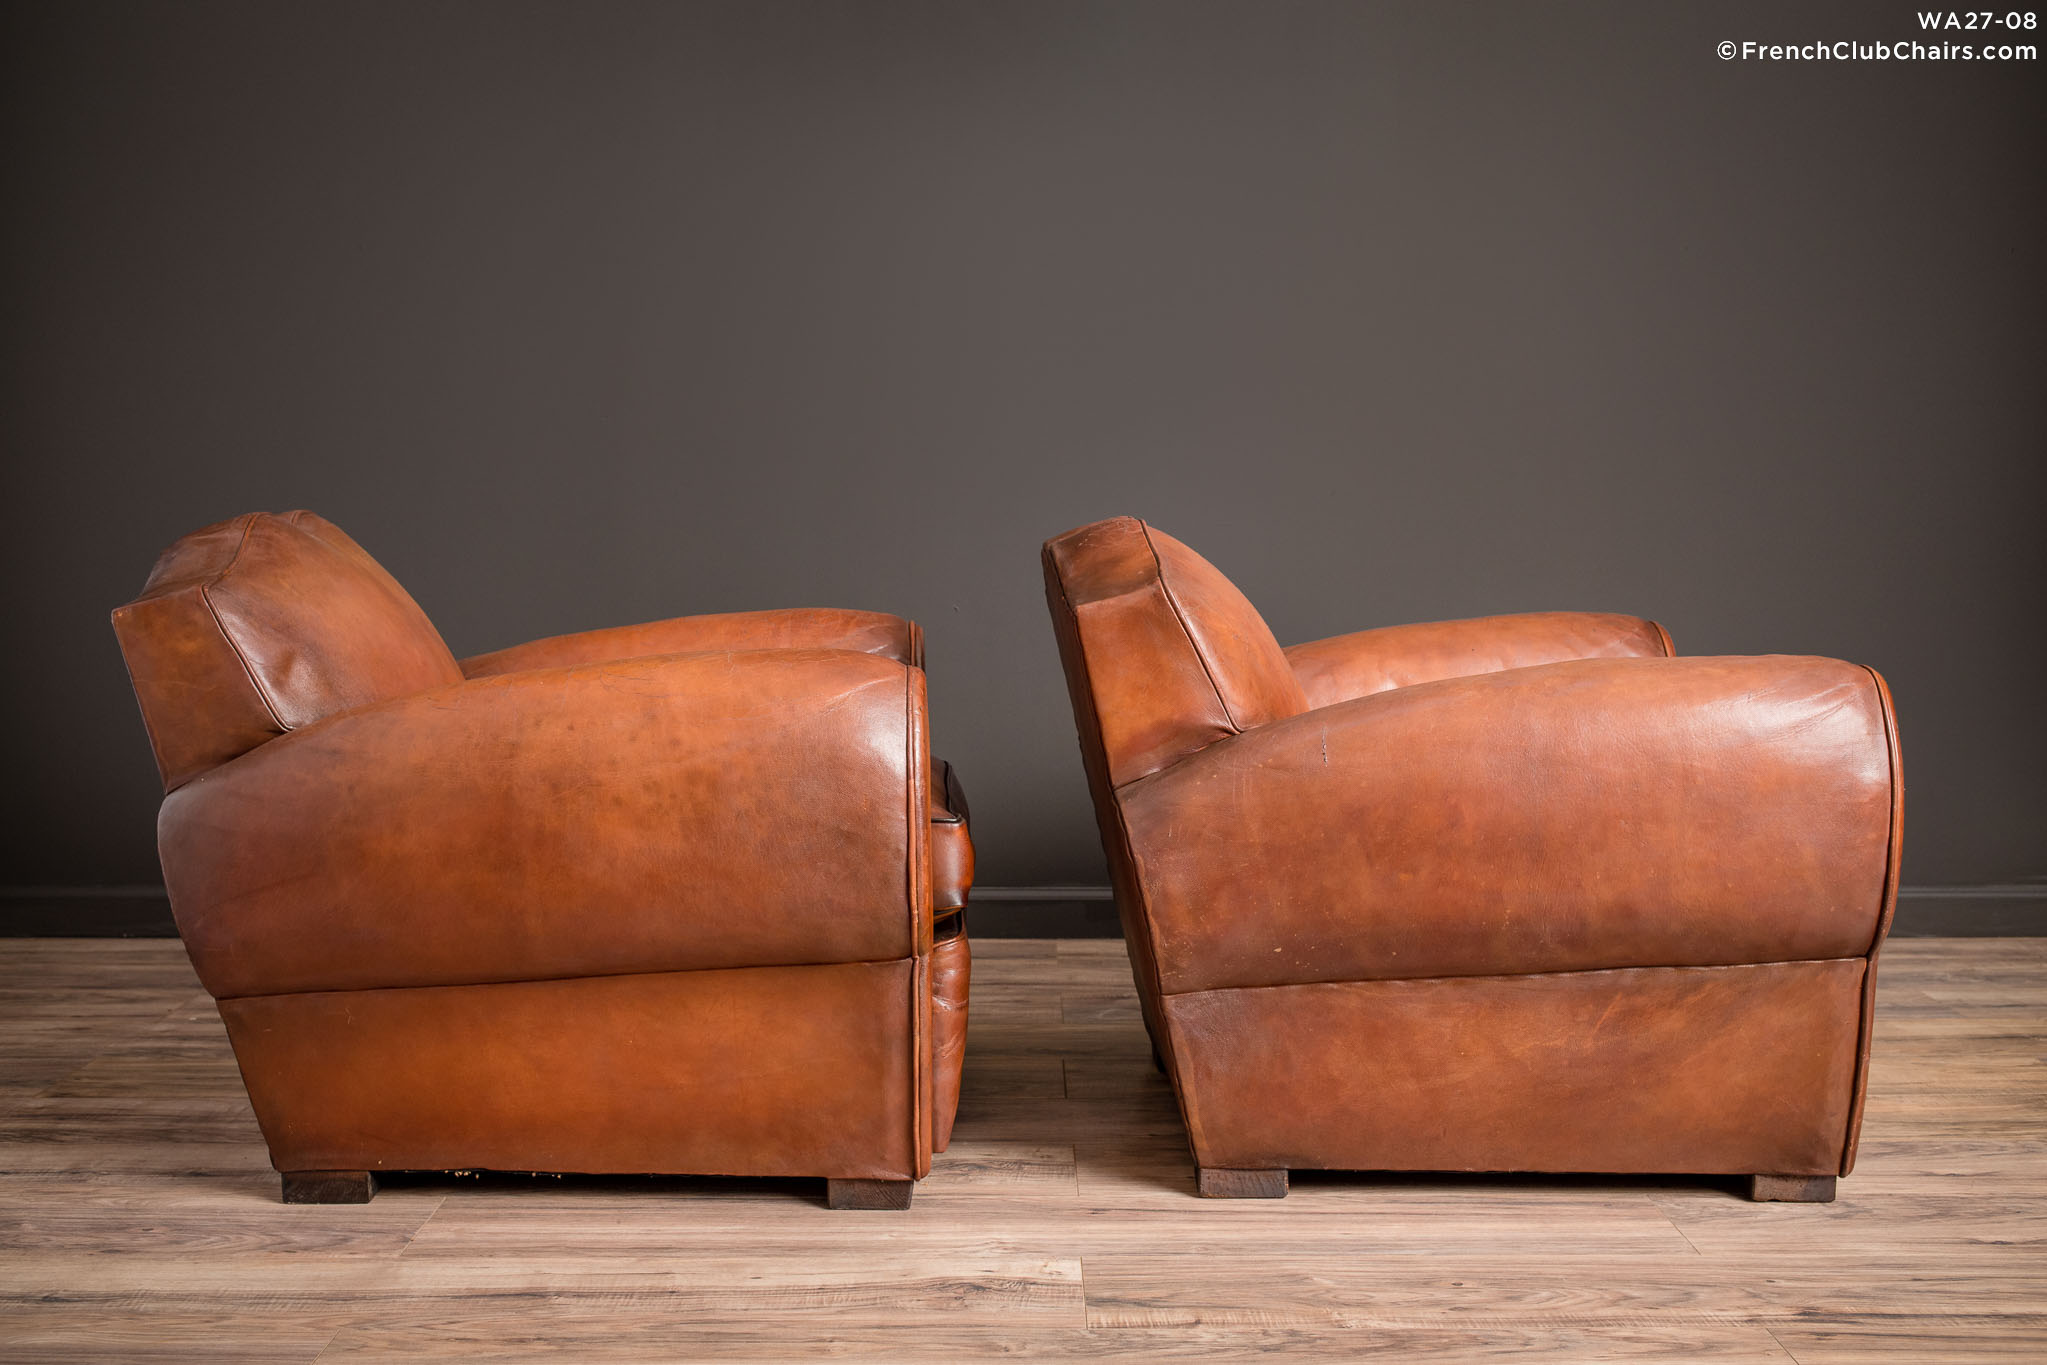 WA_27-08_Classic_Rambouillet_Mustache_Pair_R_3RT-v01-williams-antiks-leather-french-club-chair-wa_fcccom